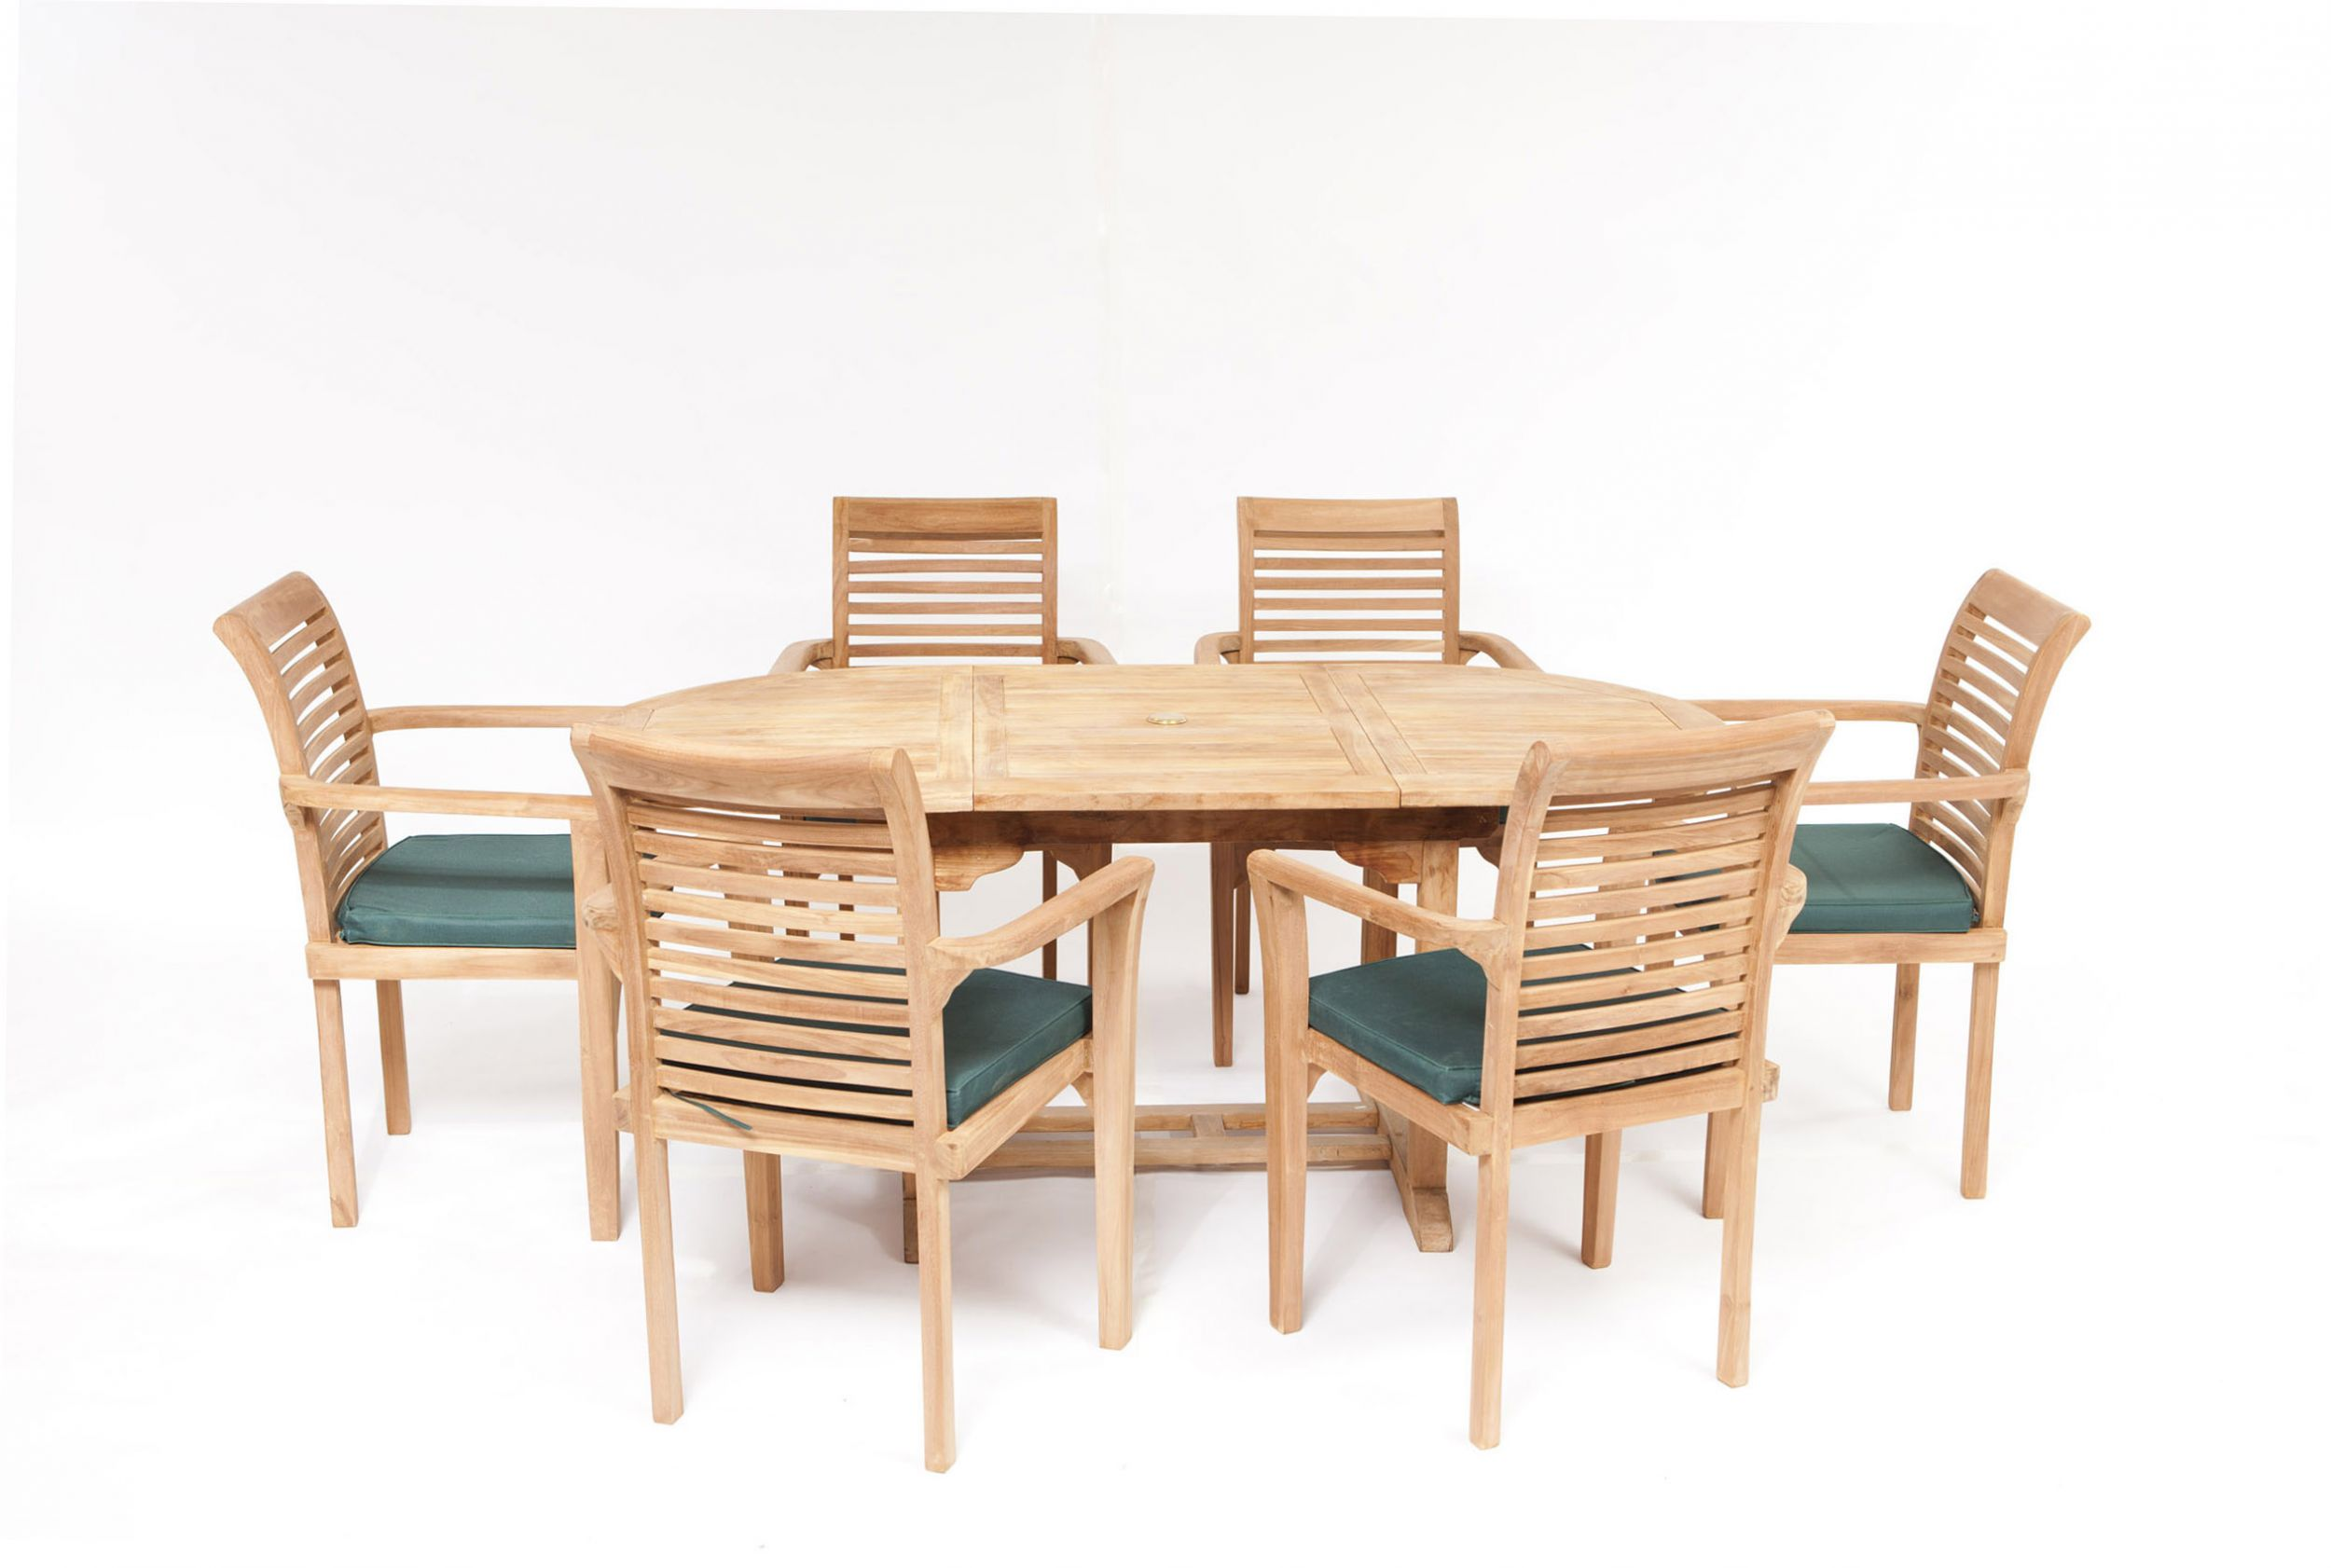 Bon Paris 6 Seater Teak Garden Furniture Set